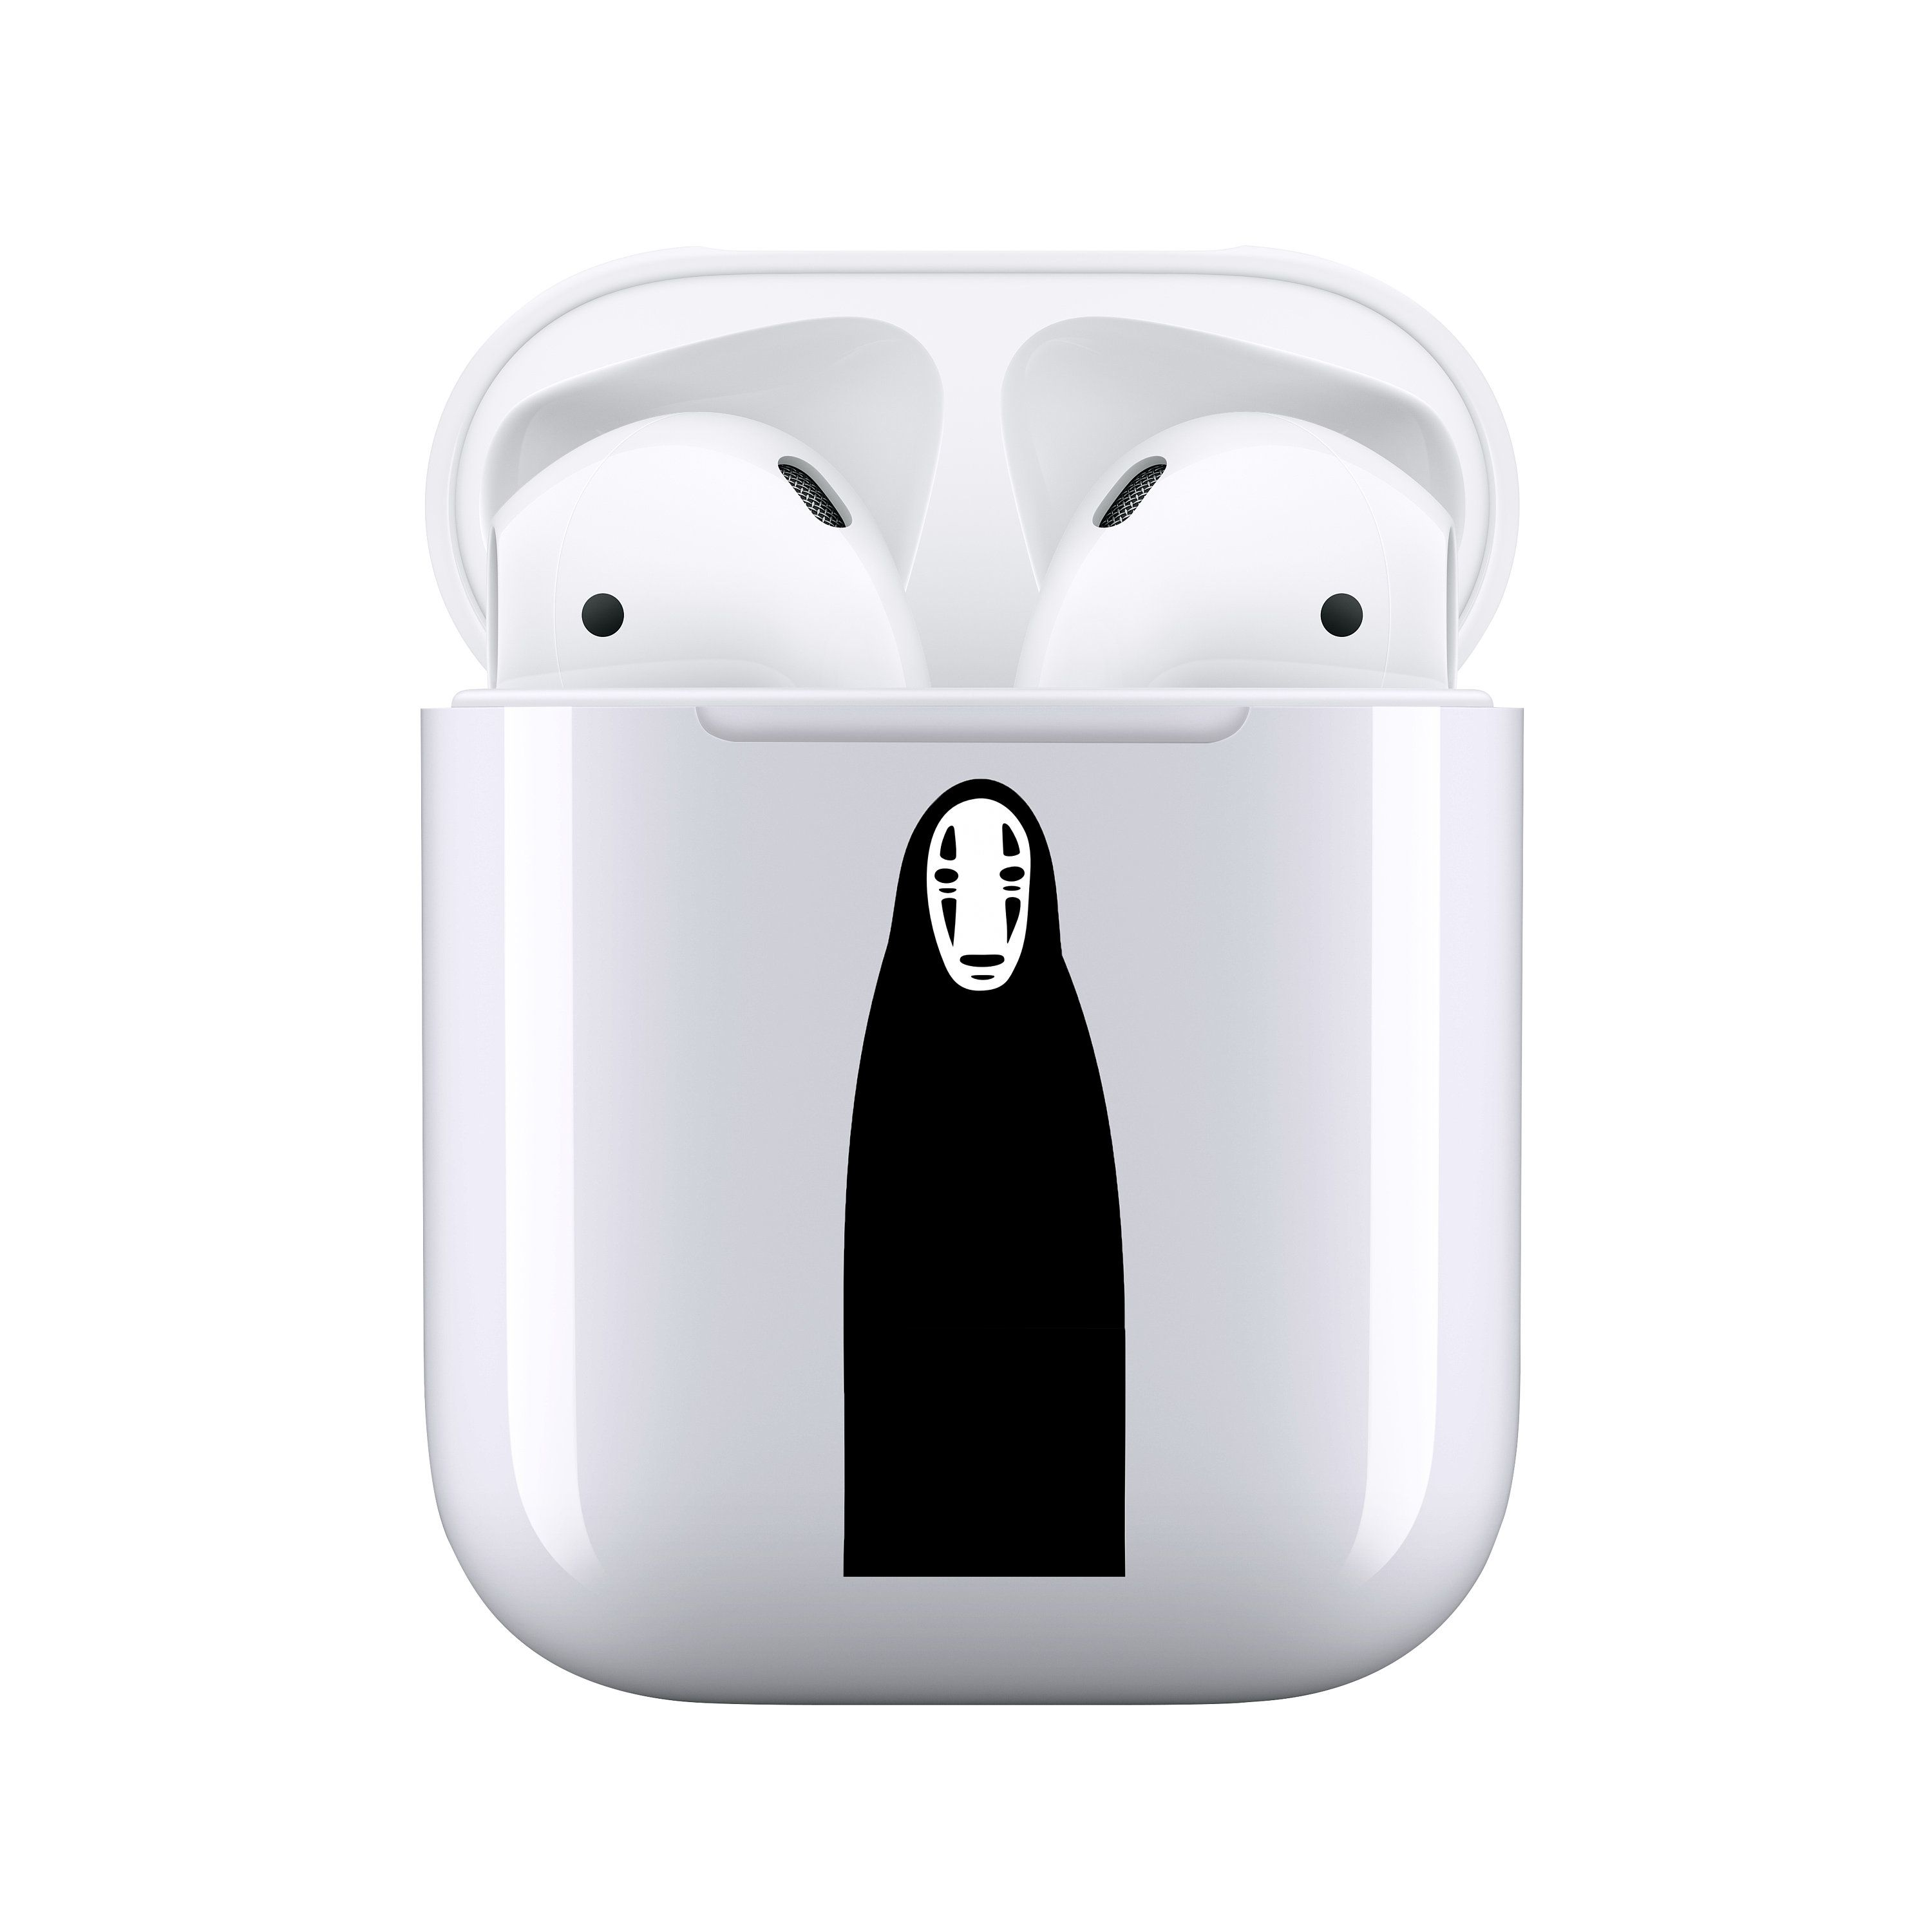 Anime Airpods Pro Case Star Airpods 2 Hard Clear Airpods 1 Case Anime Airpod 3 Cover Apple Headphones Holder Airpo Apple Headphone Headphone Holder Airpod Case